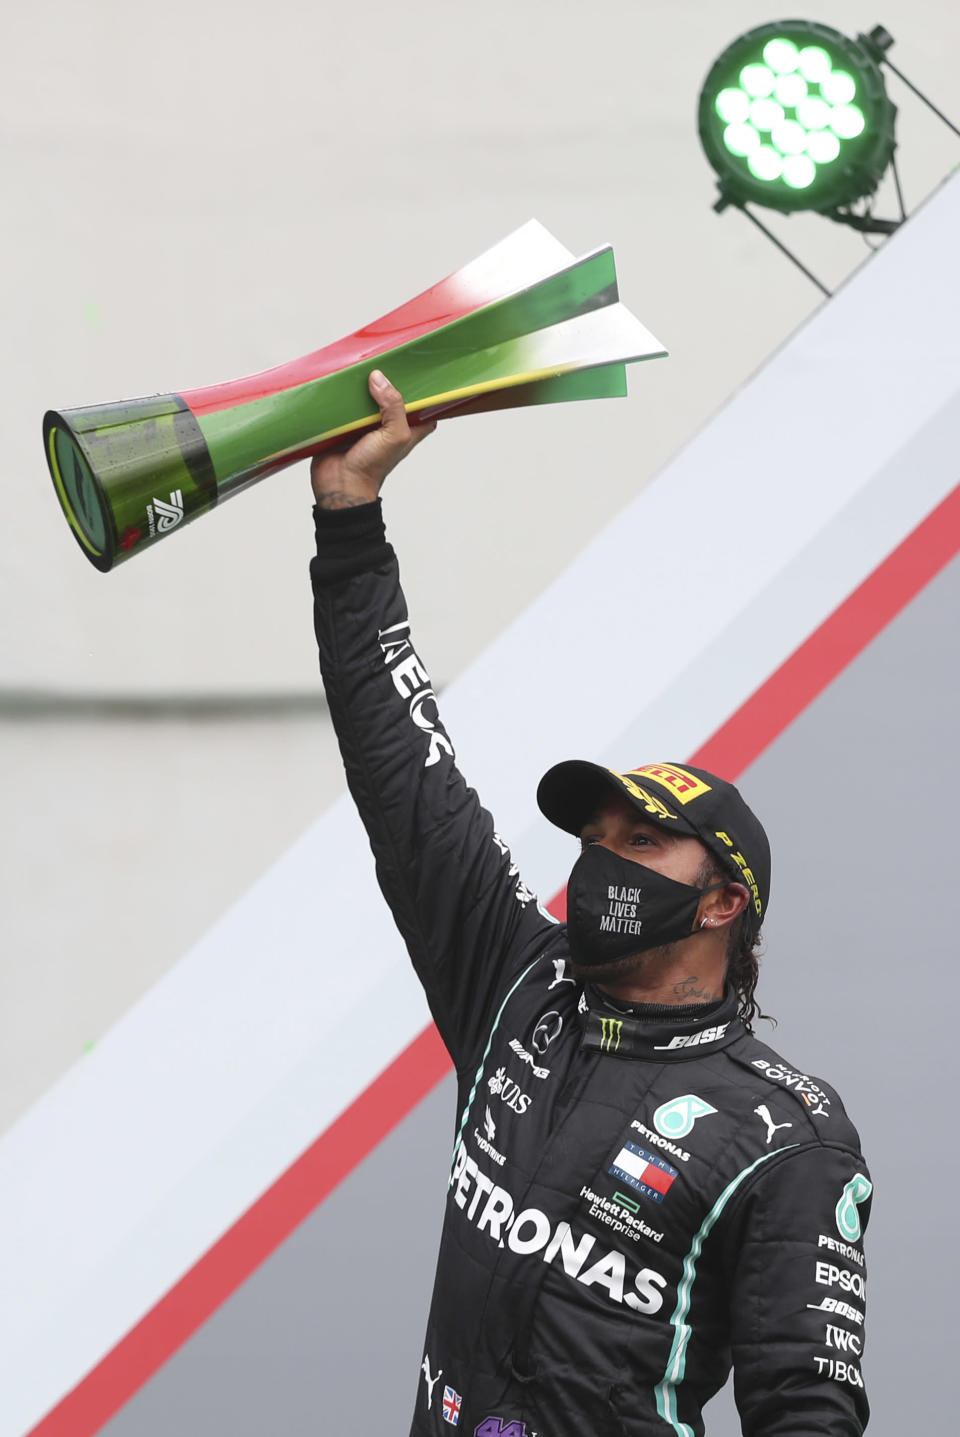 Mercedes driver Lewis Hamilton of Britain holds his trophy on the podium after his record breaking win during the Formula One Portuguese Grand Prix at the Algarve International Circuit in Portimao, Portugal, Sunday, Oct. 25, 2020. (Jose Sena Goulao, Pool via AP)